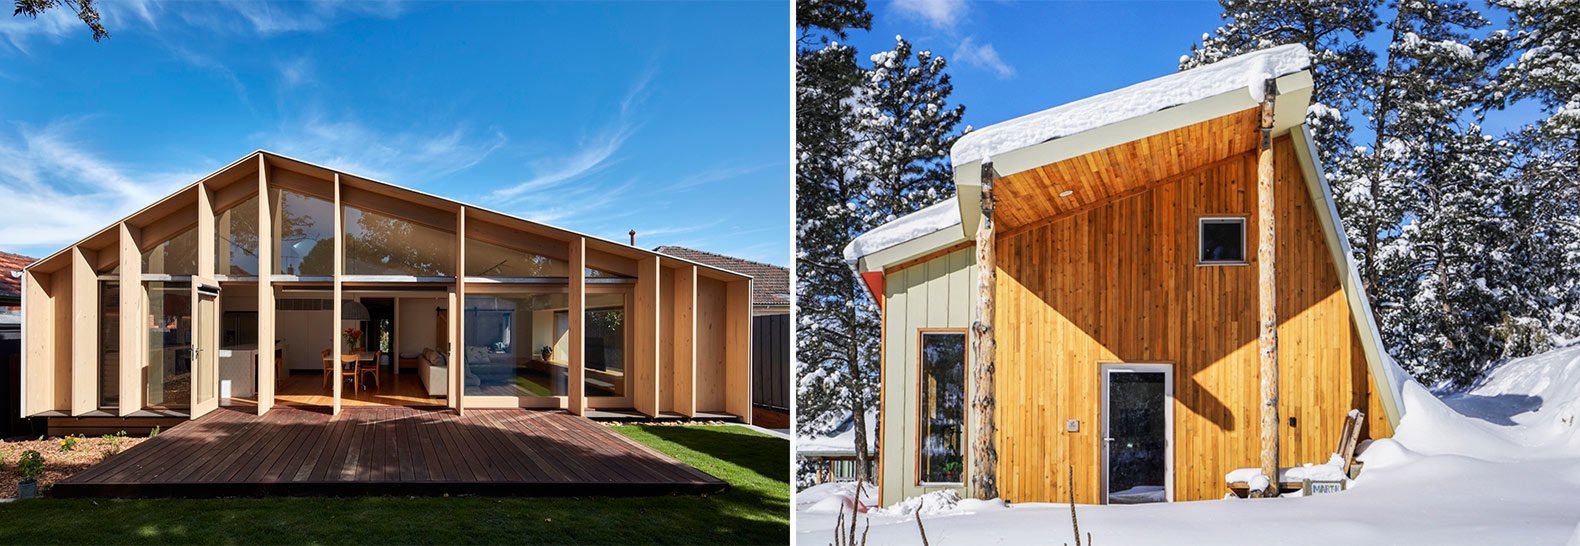 6 ways to add passive solar features to your home